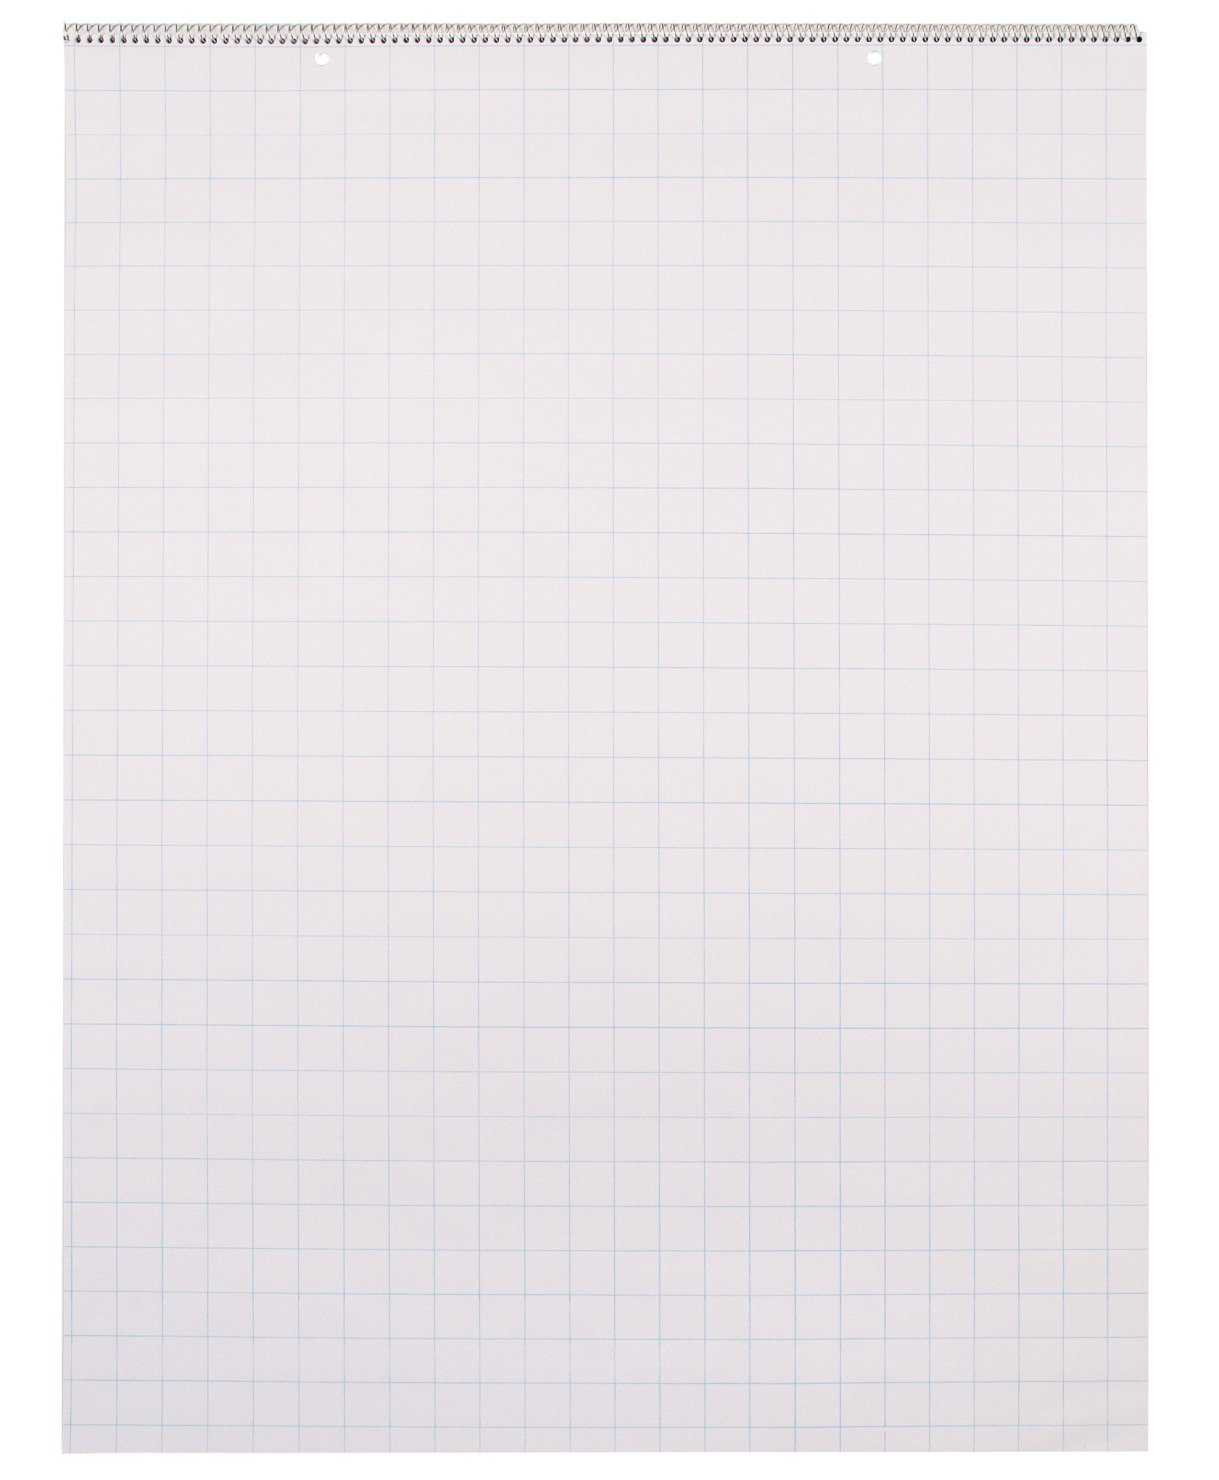 School Smart Chart Paper Pad, 24 x 32 Inches, 1 Inch Grids, 25 Sheets